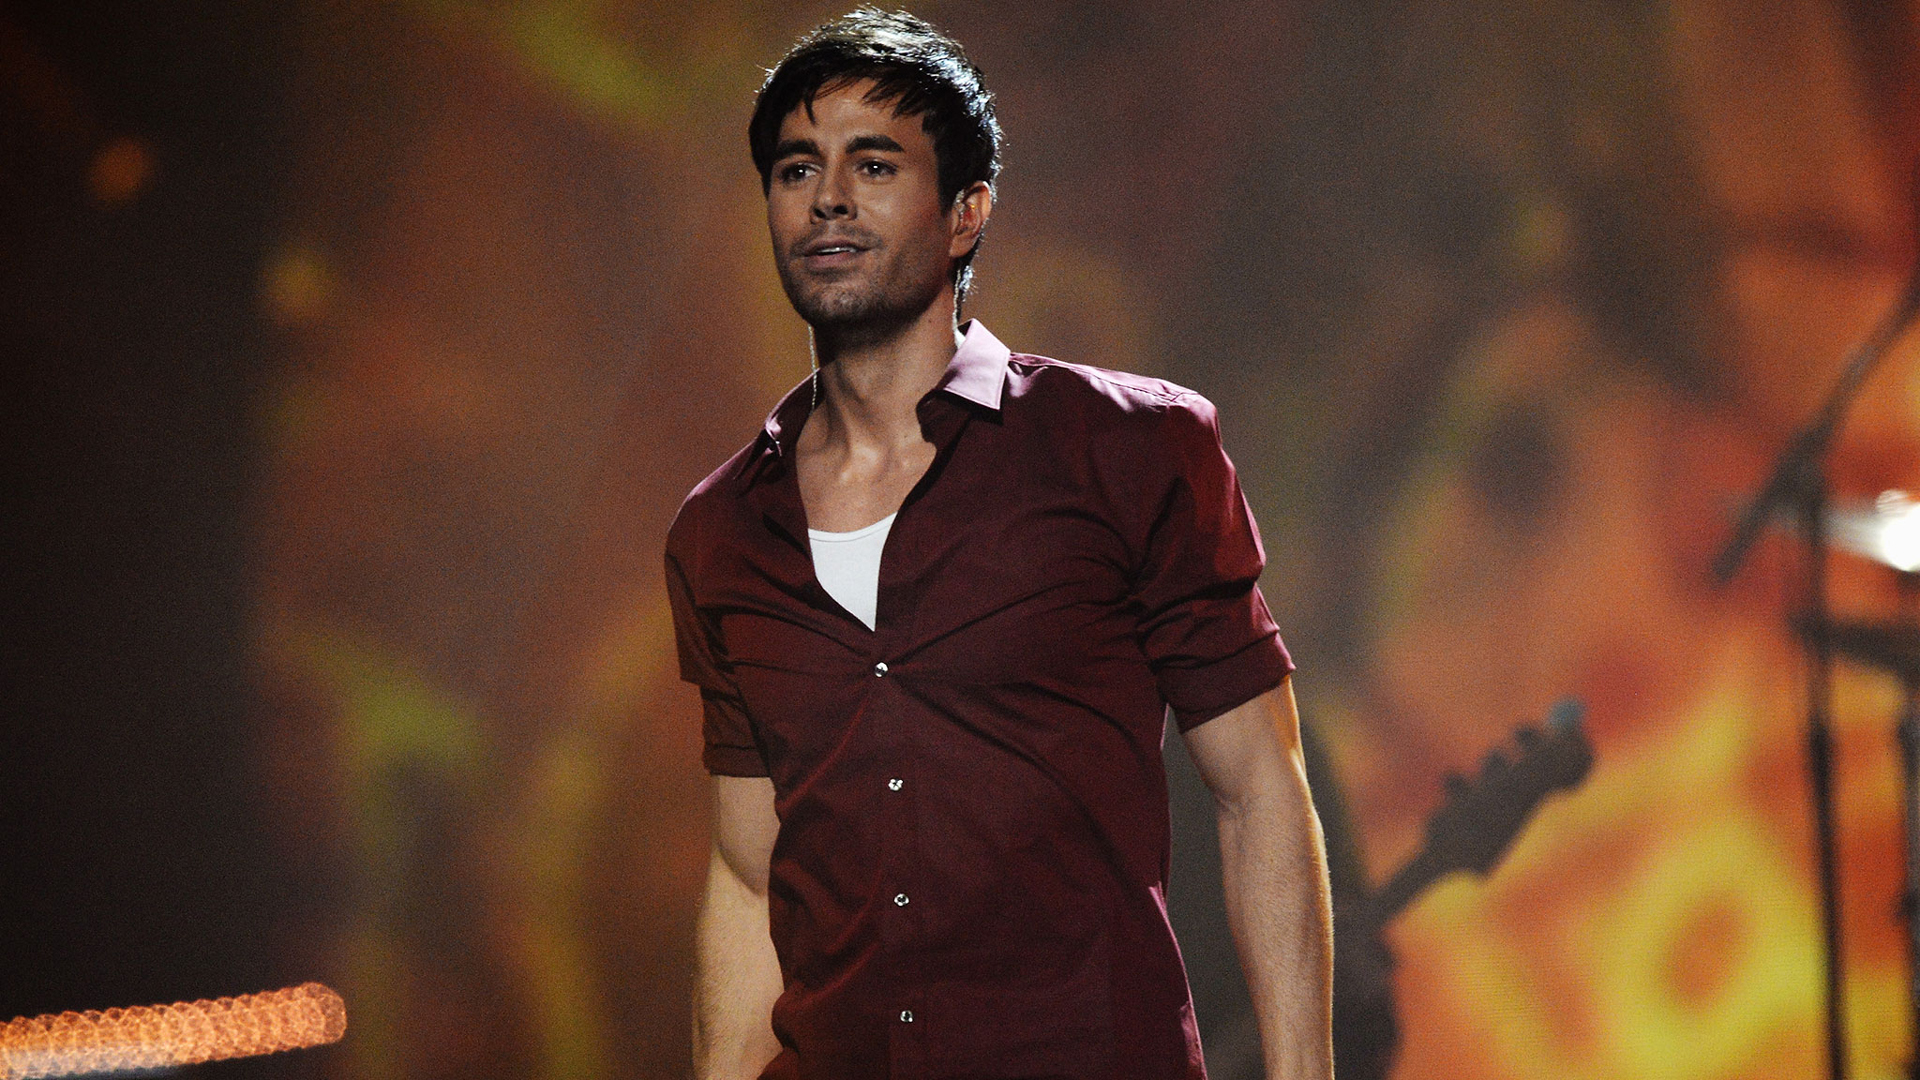 Enrique Iglesias High Quality Wallpapers